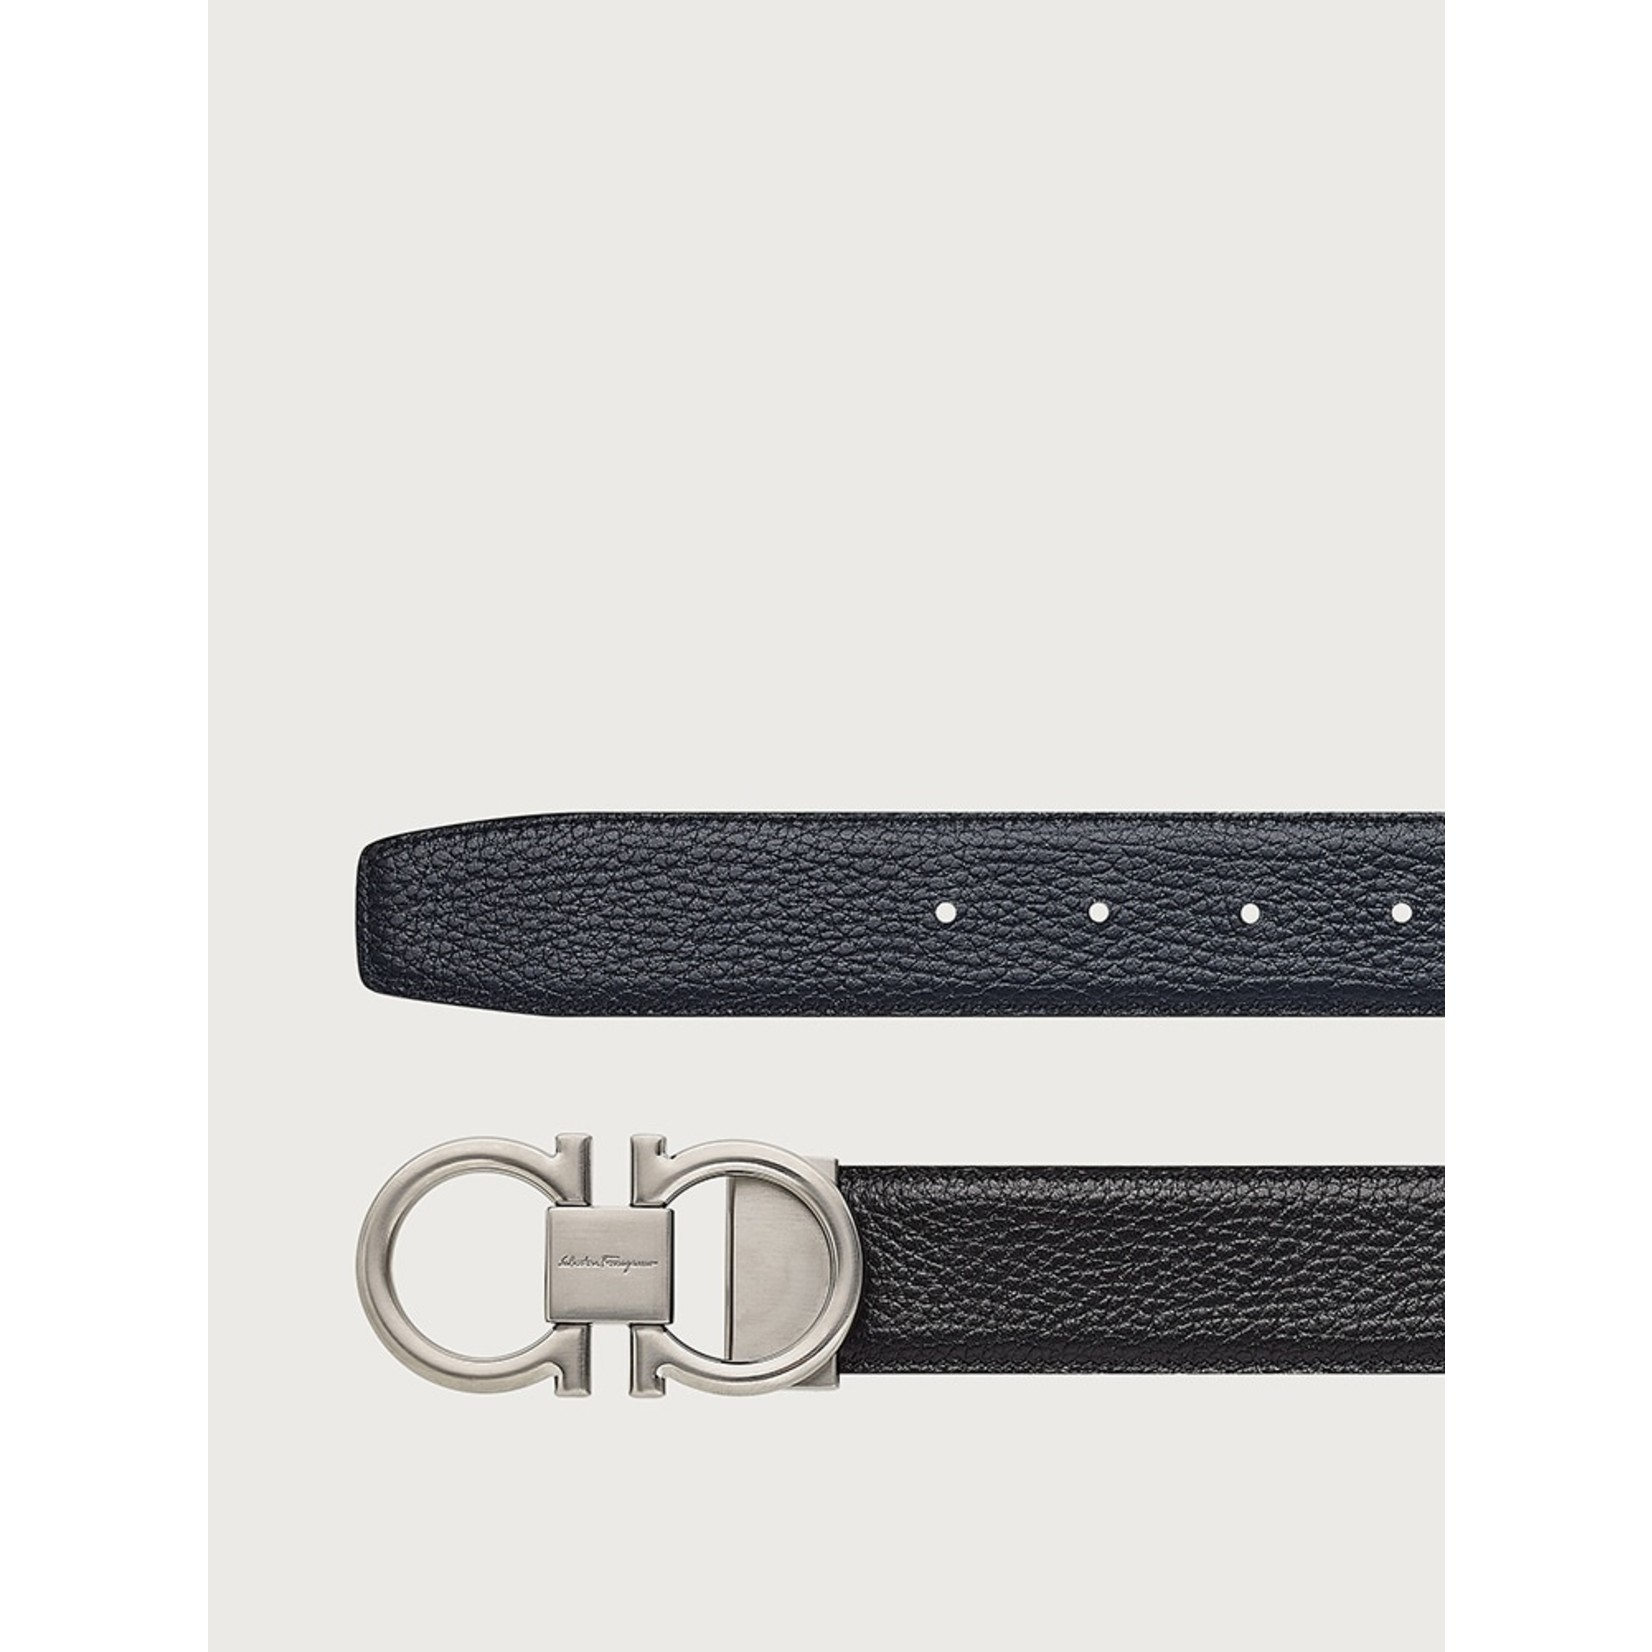 SALVATORE FERRAGAMO SALVATORE FERRAGAMO - REVERSIBLE GANCINI BELT 742688 BLACK BLUE